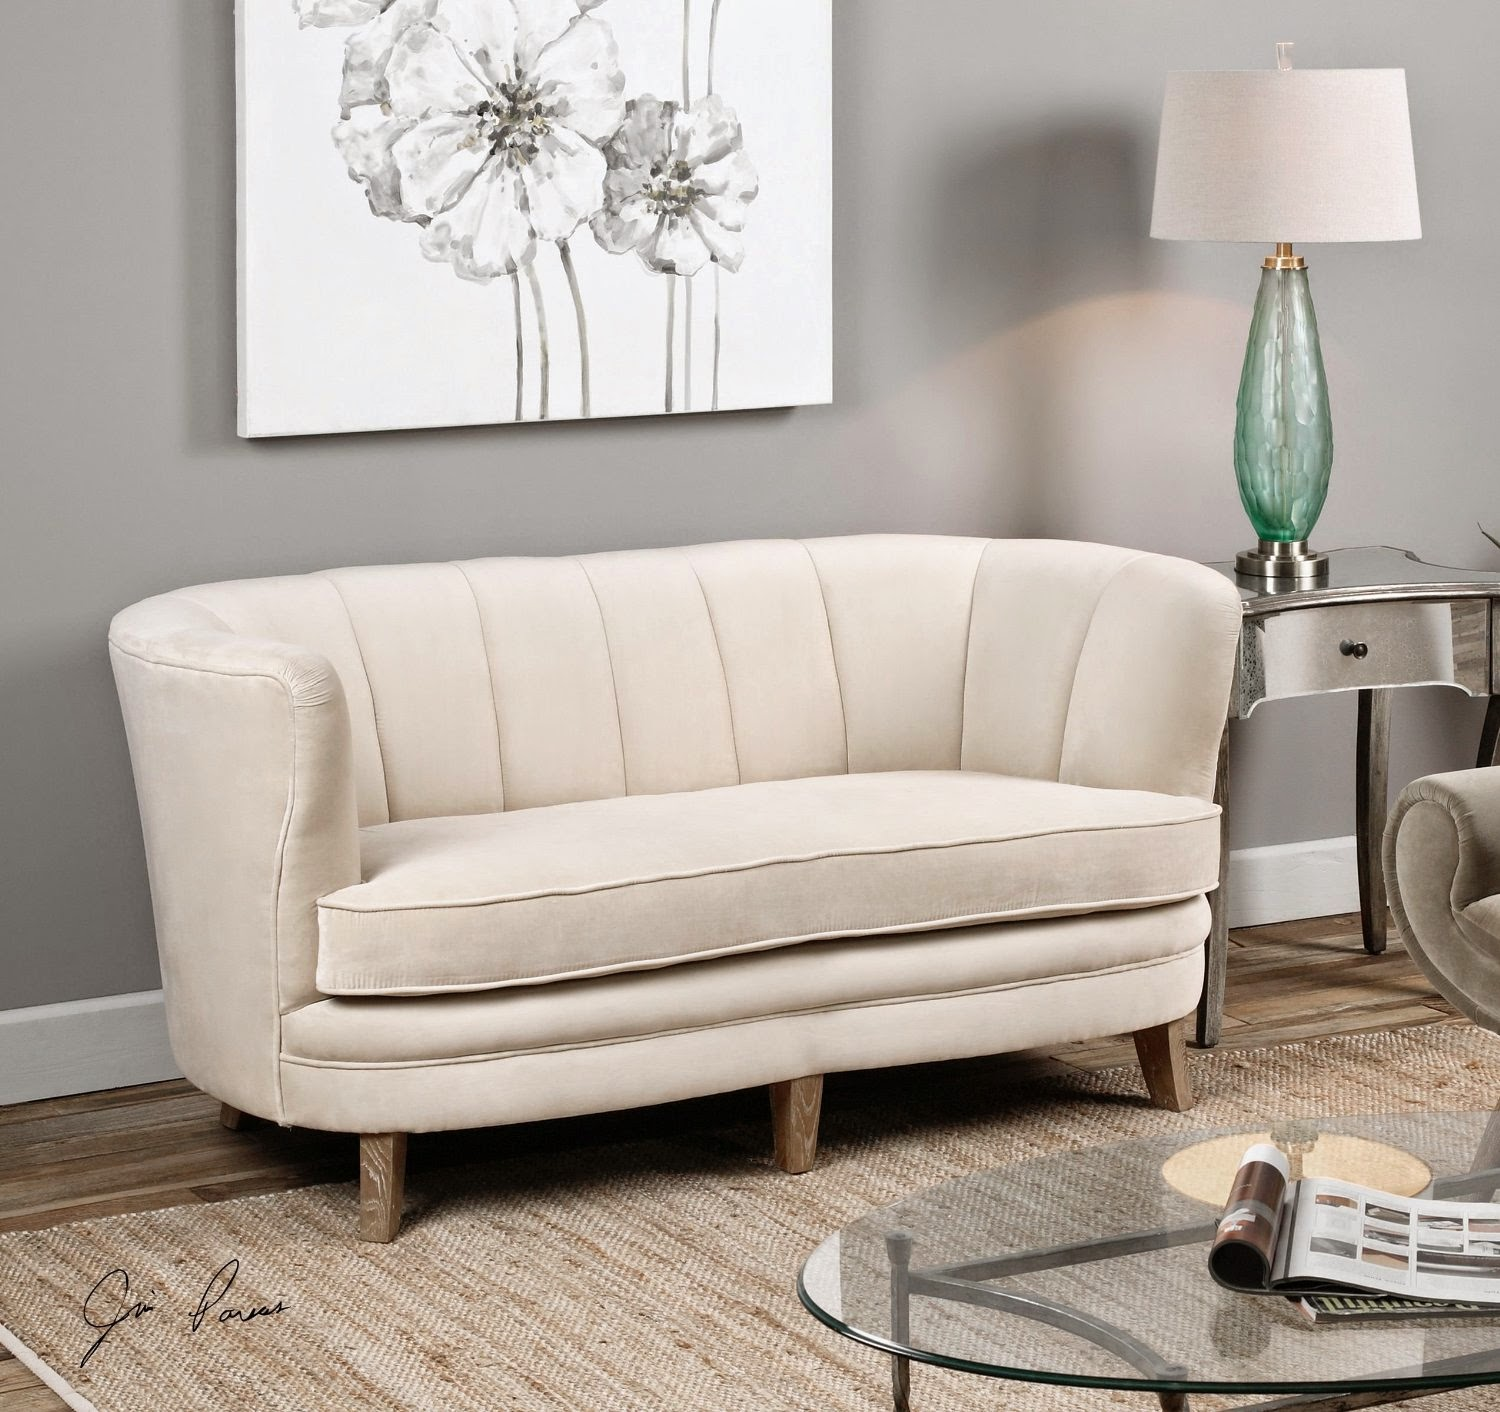 White Curved Back Sofa For